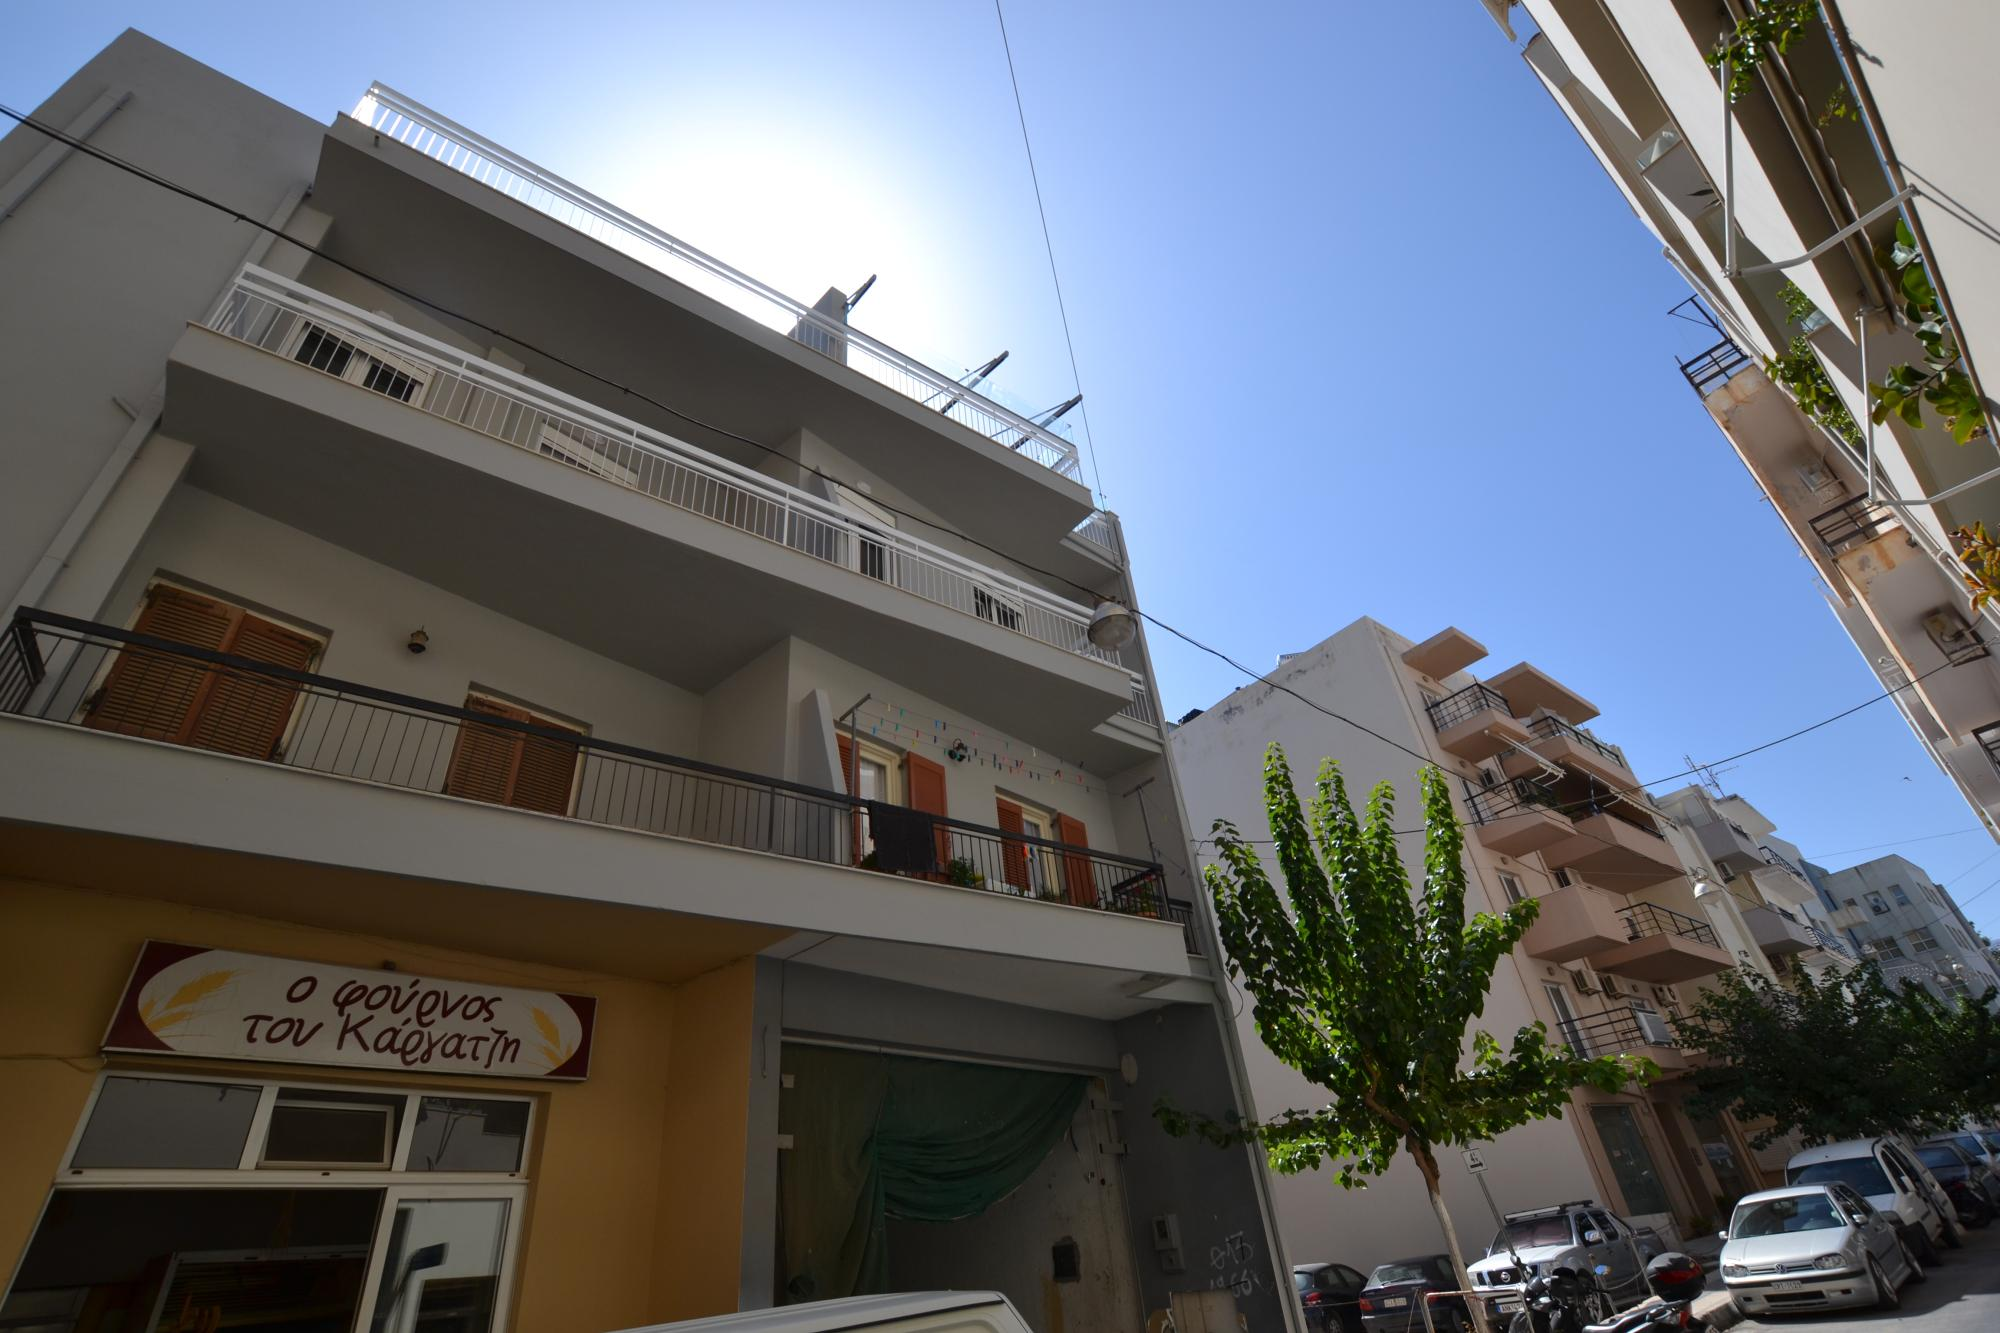 2nd floor modern two bedroom apartment near town center and beaches.